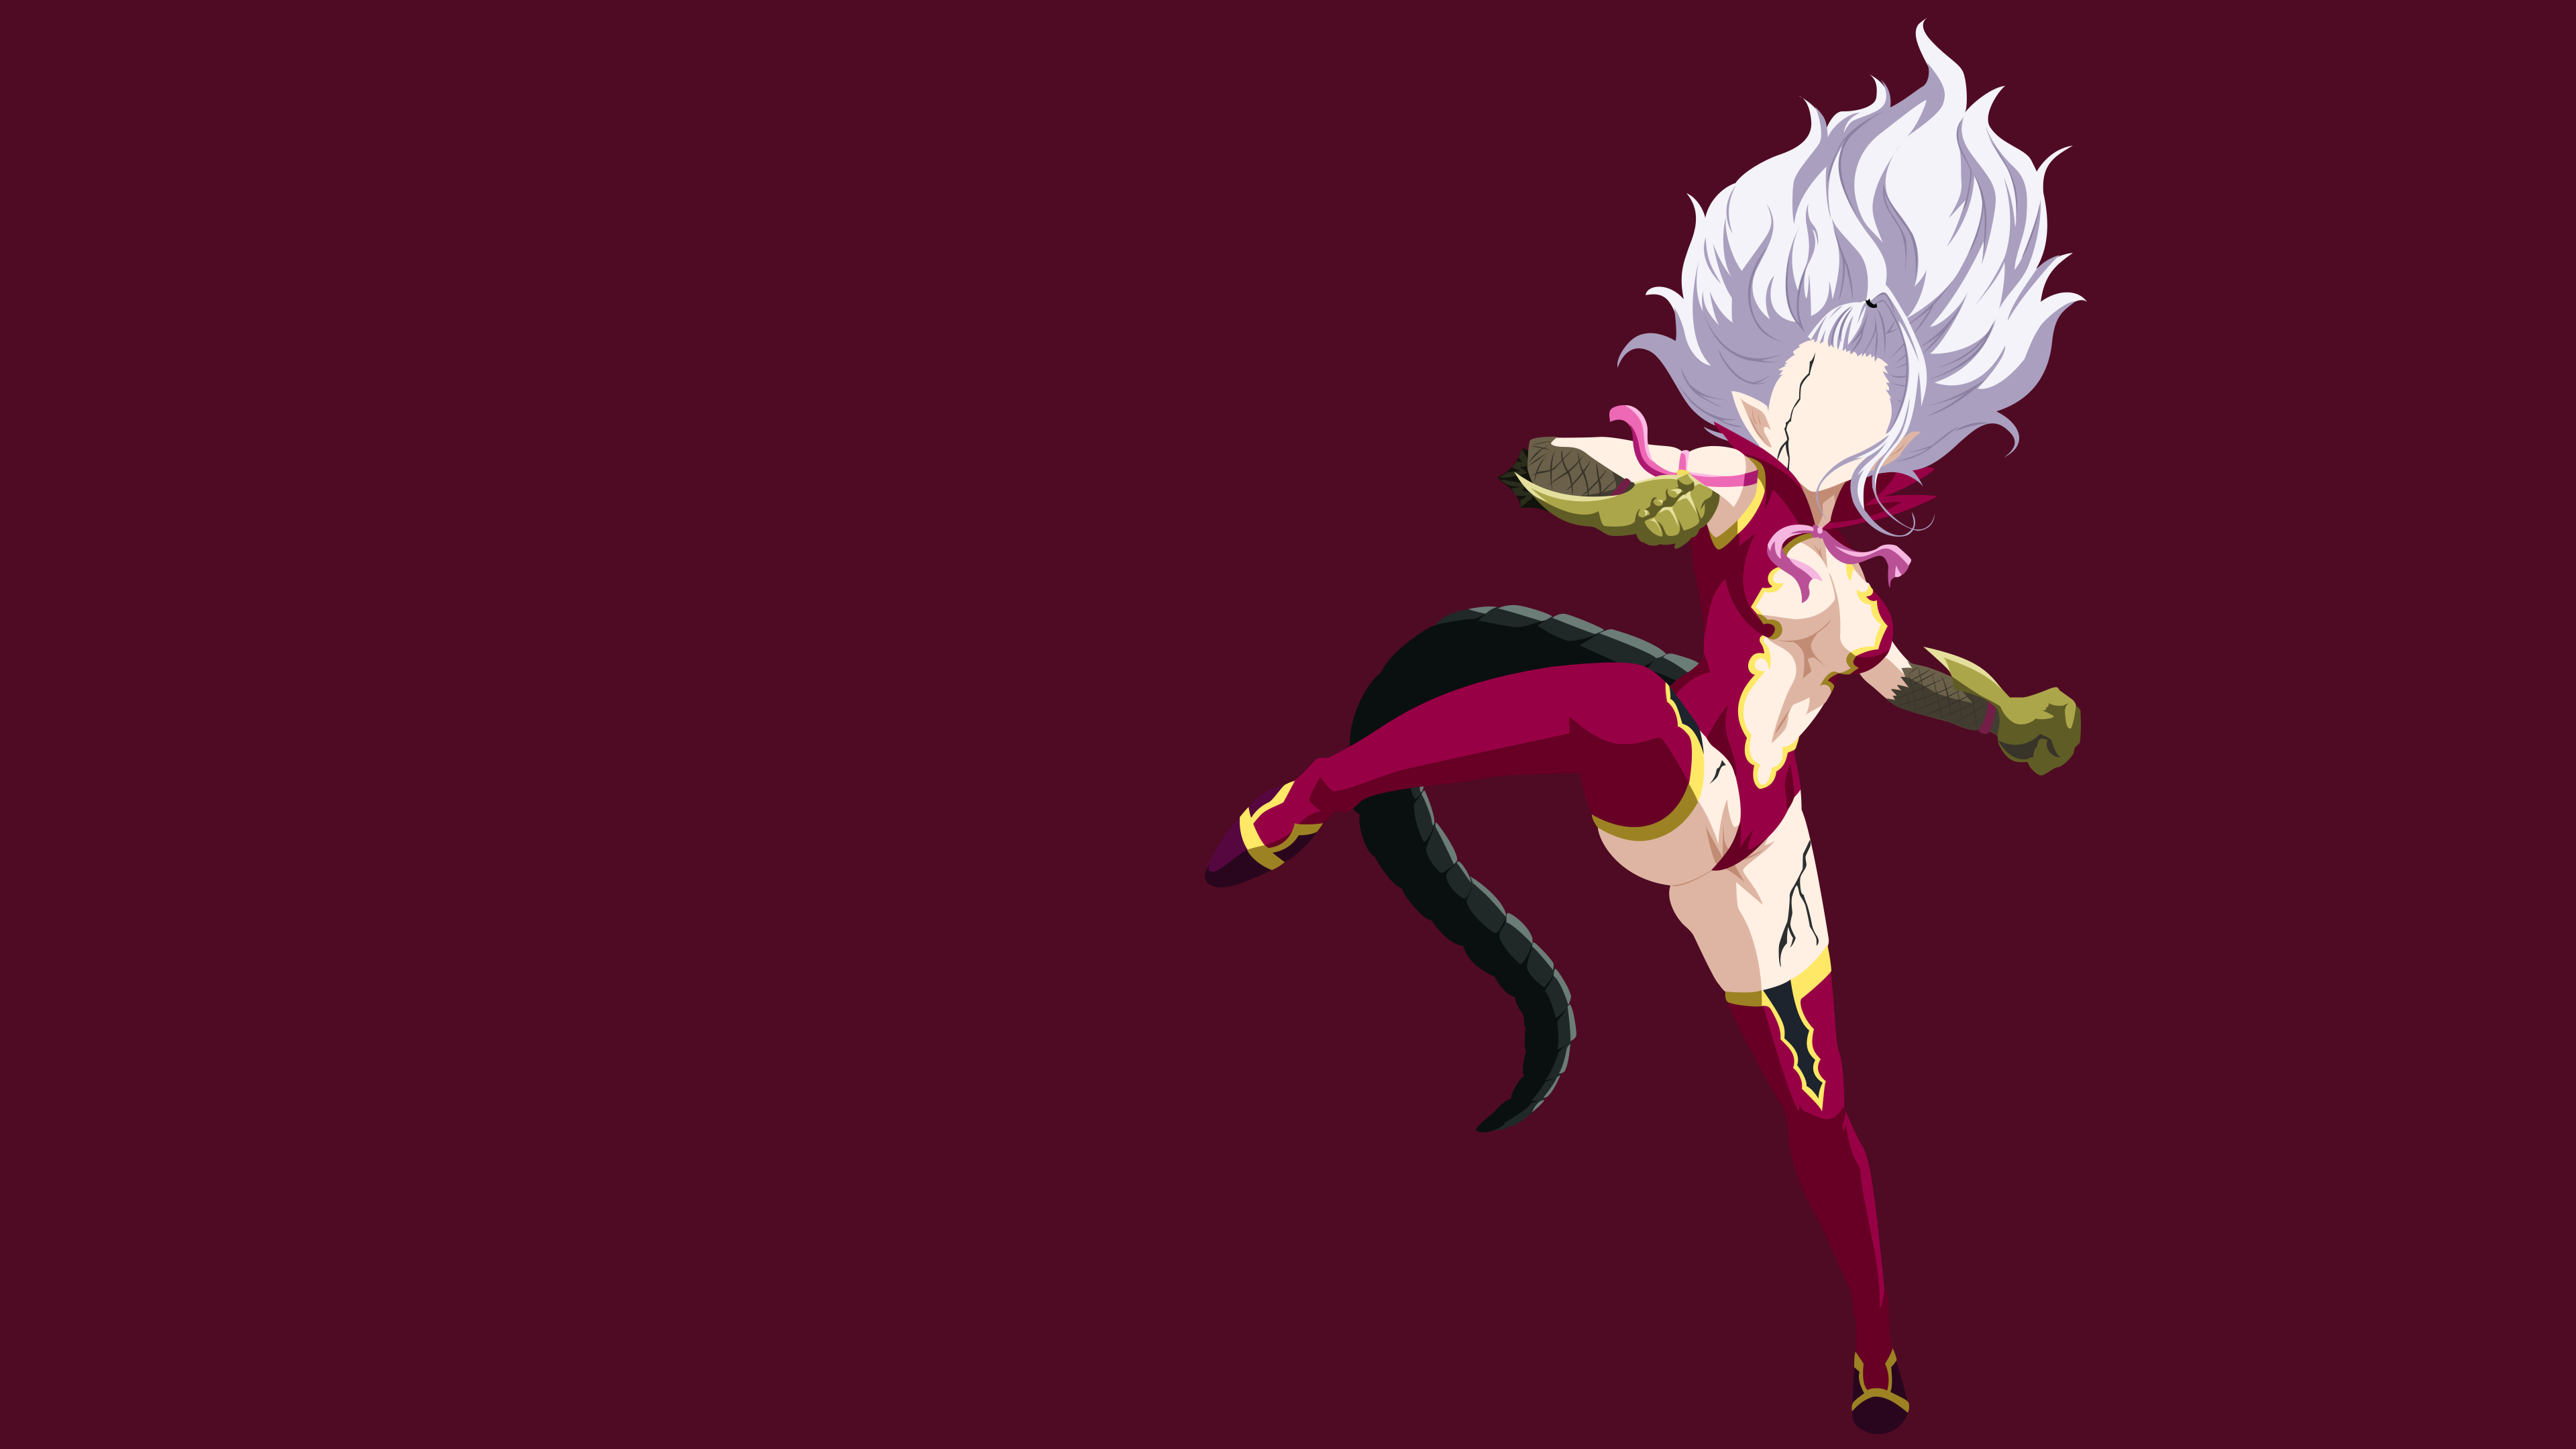 Fairy Tail Mirajane Satan Soul Alternate By Vk For Da Win On Deviantart We have 72+ amazing background pictures carefully picked by our community. fairy tail mirajane satan soul